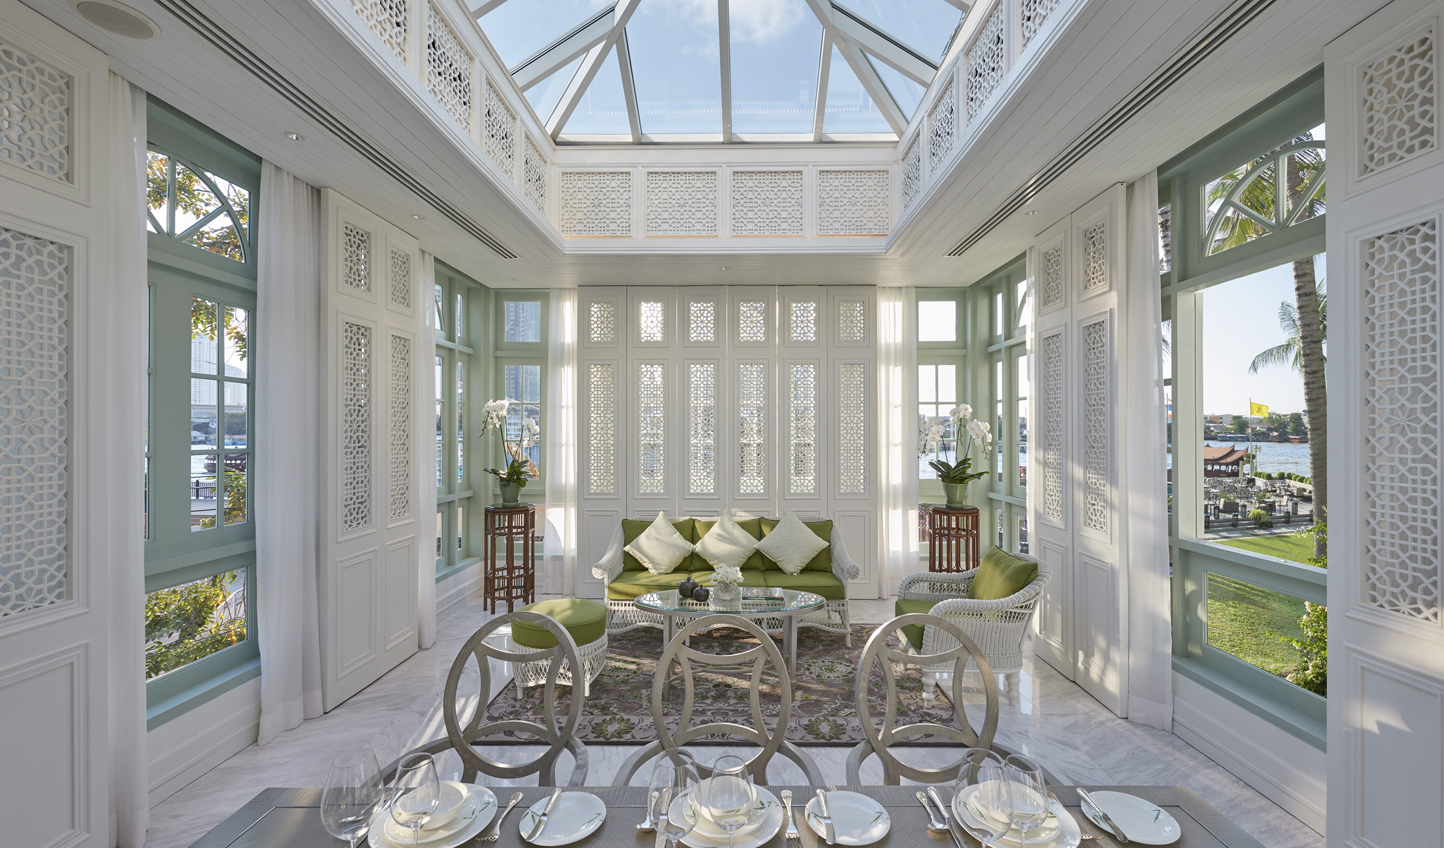 Enjoy beautiful river views from your private Victorian-style conservatory